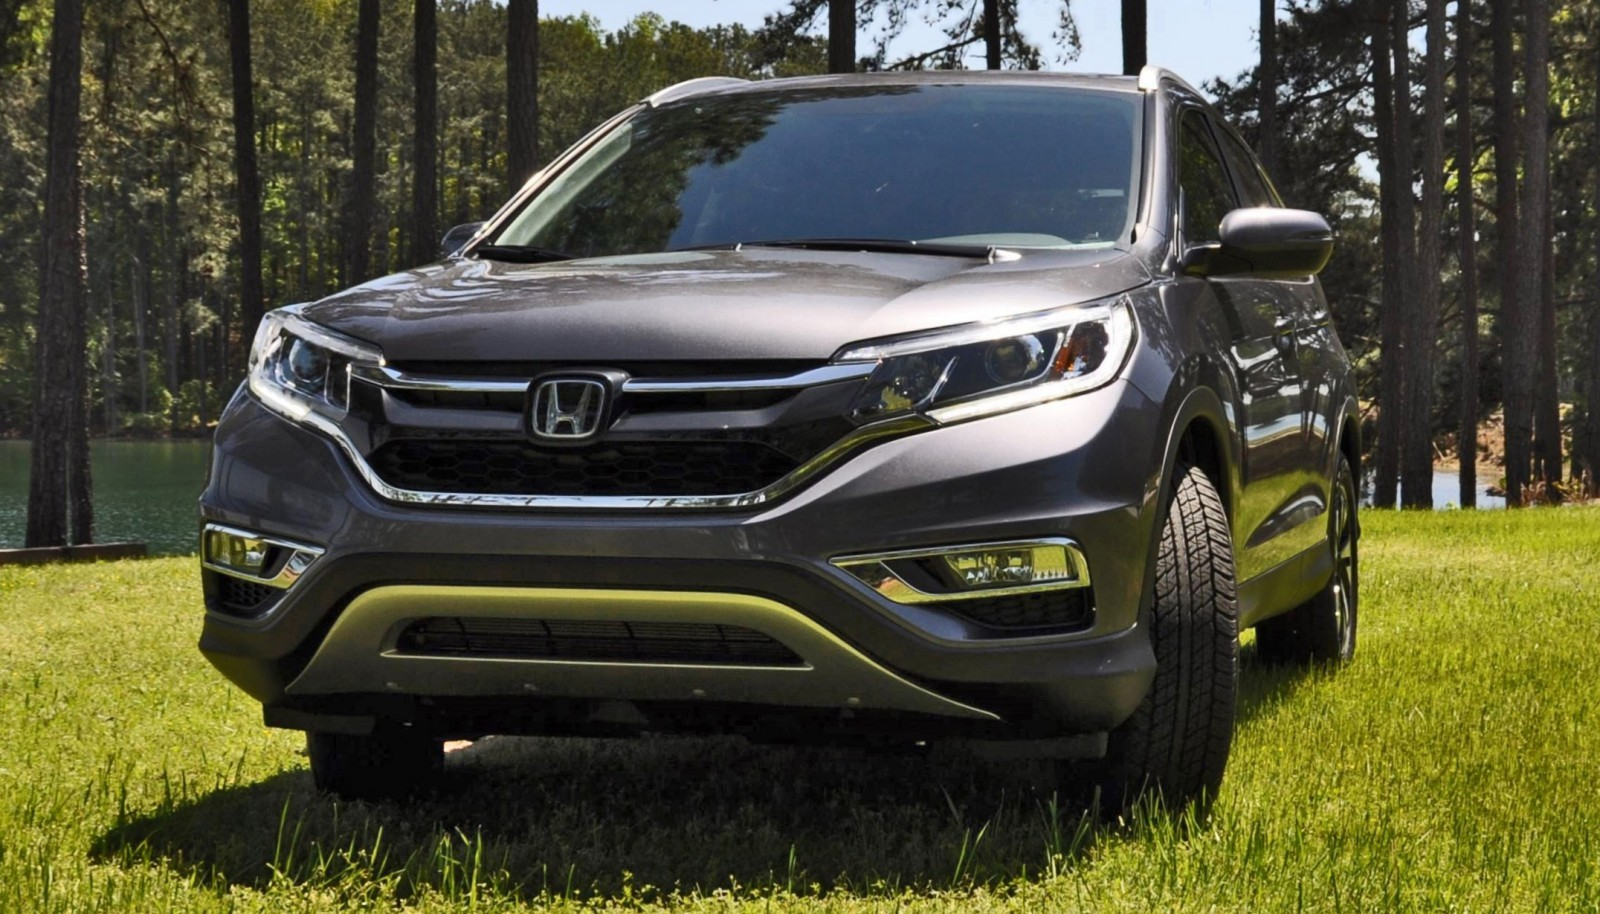 road test review 2015 honda cr v touring awd is stylish top trim. Black Bedroom Furniture Sets. Home Design Ideas